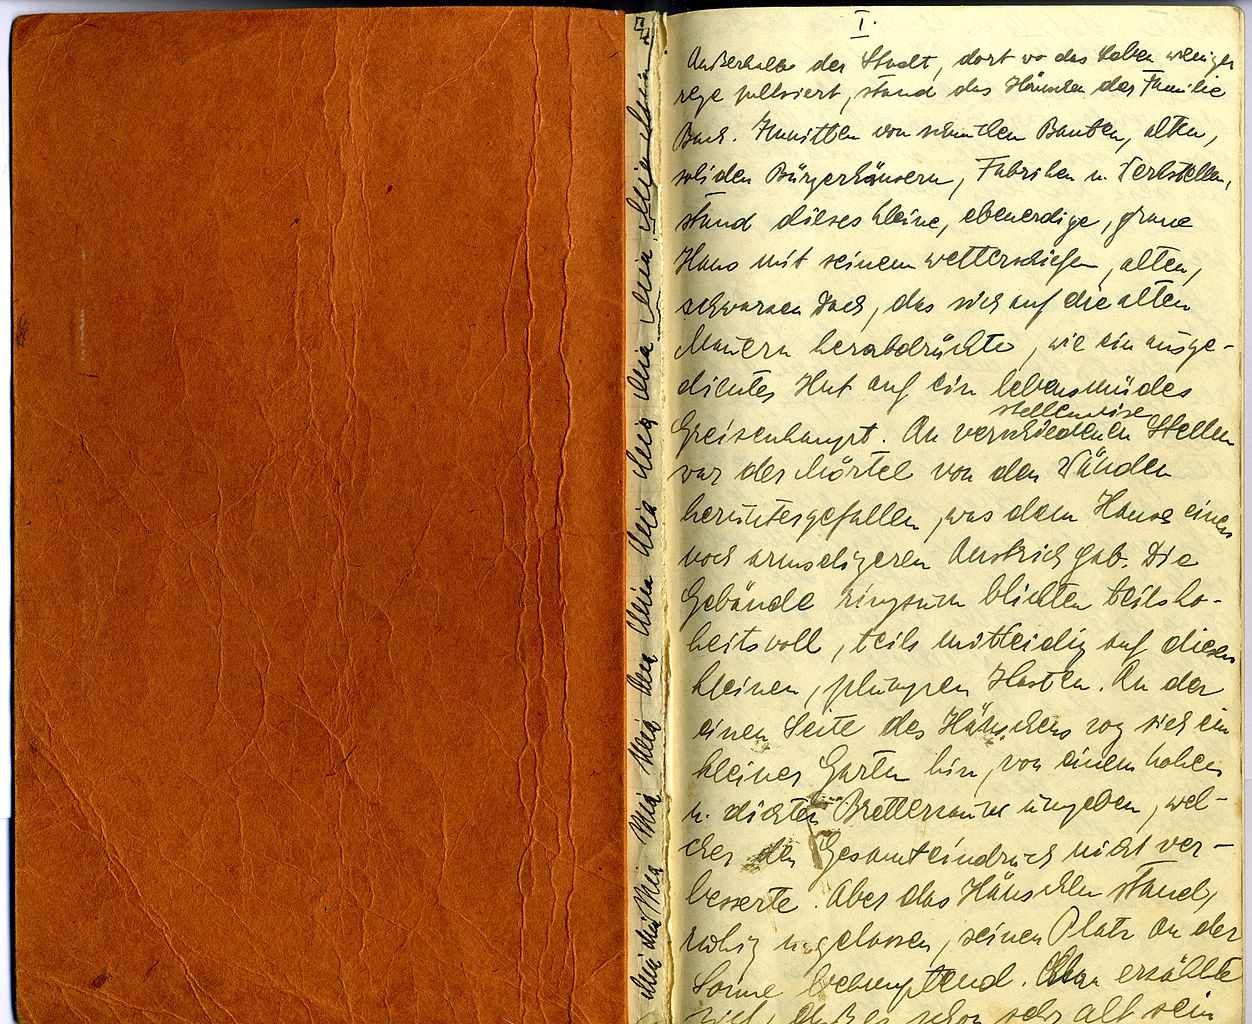 leather journal with handwritten text